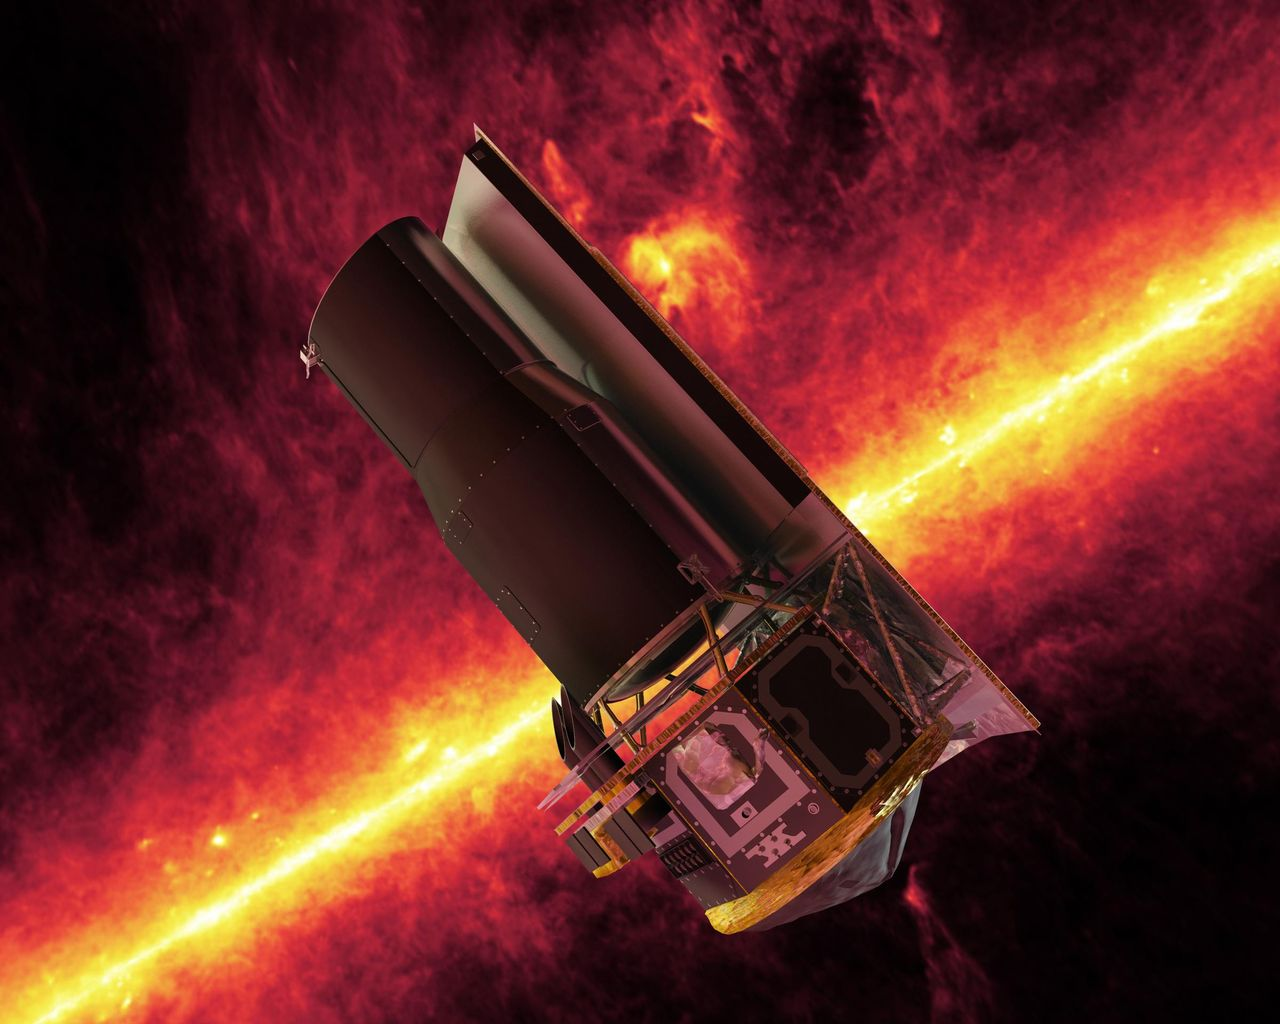 Spitzer Space Telescope Must Be Shut Down